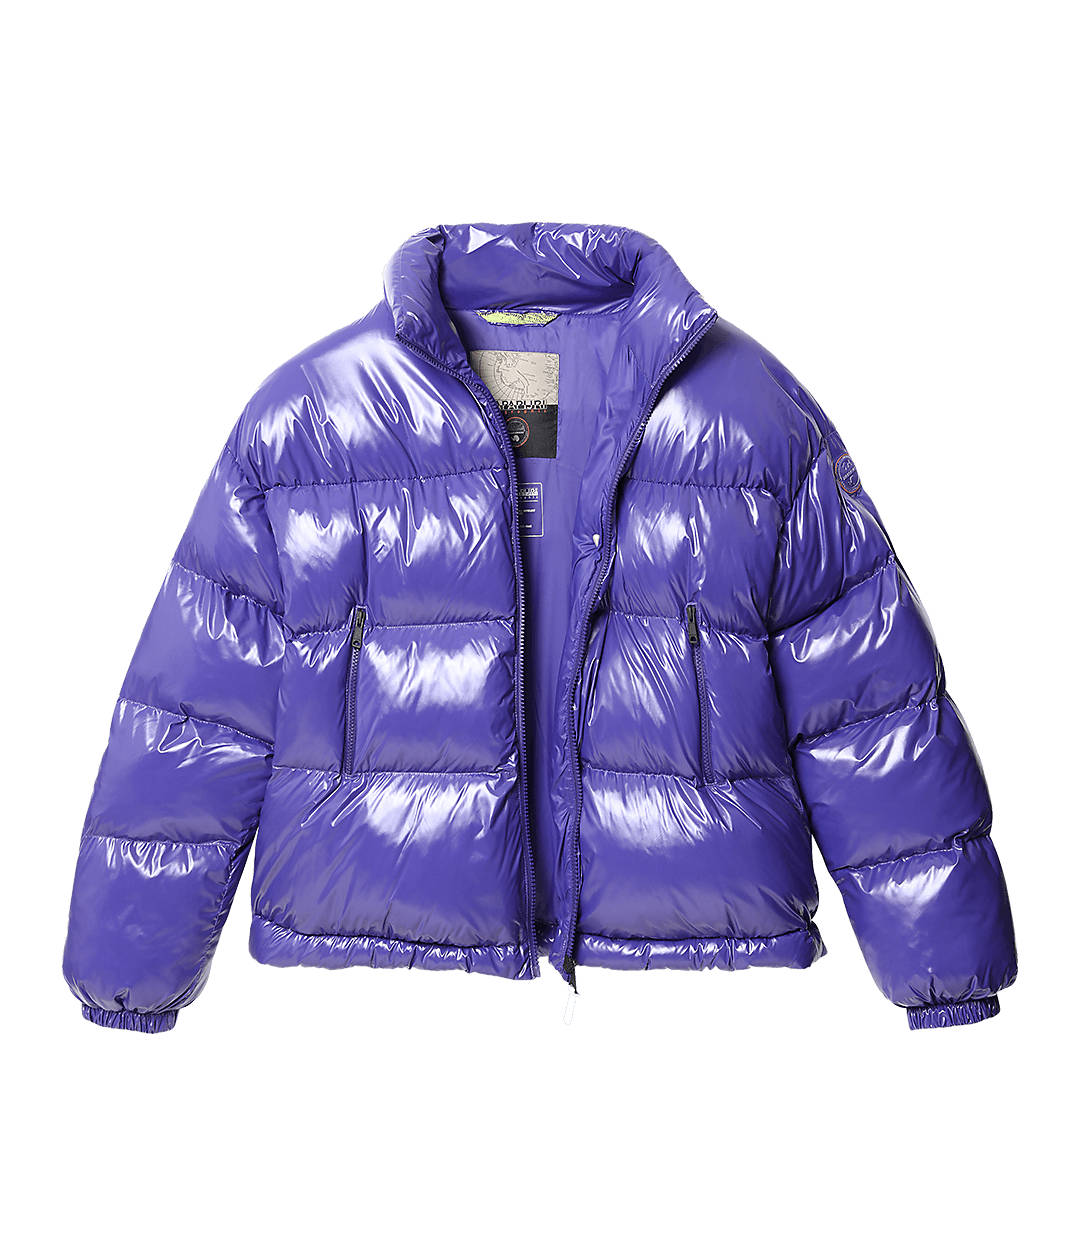 Superlight Puffer Jacket Art Shiny